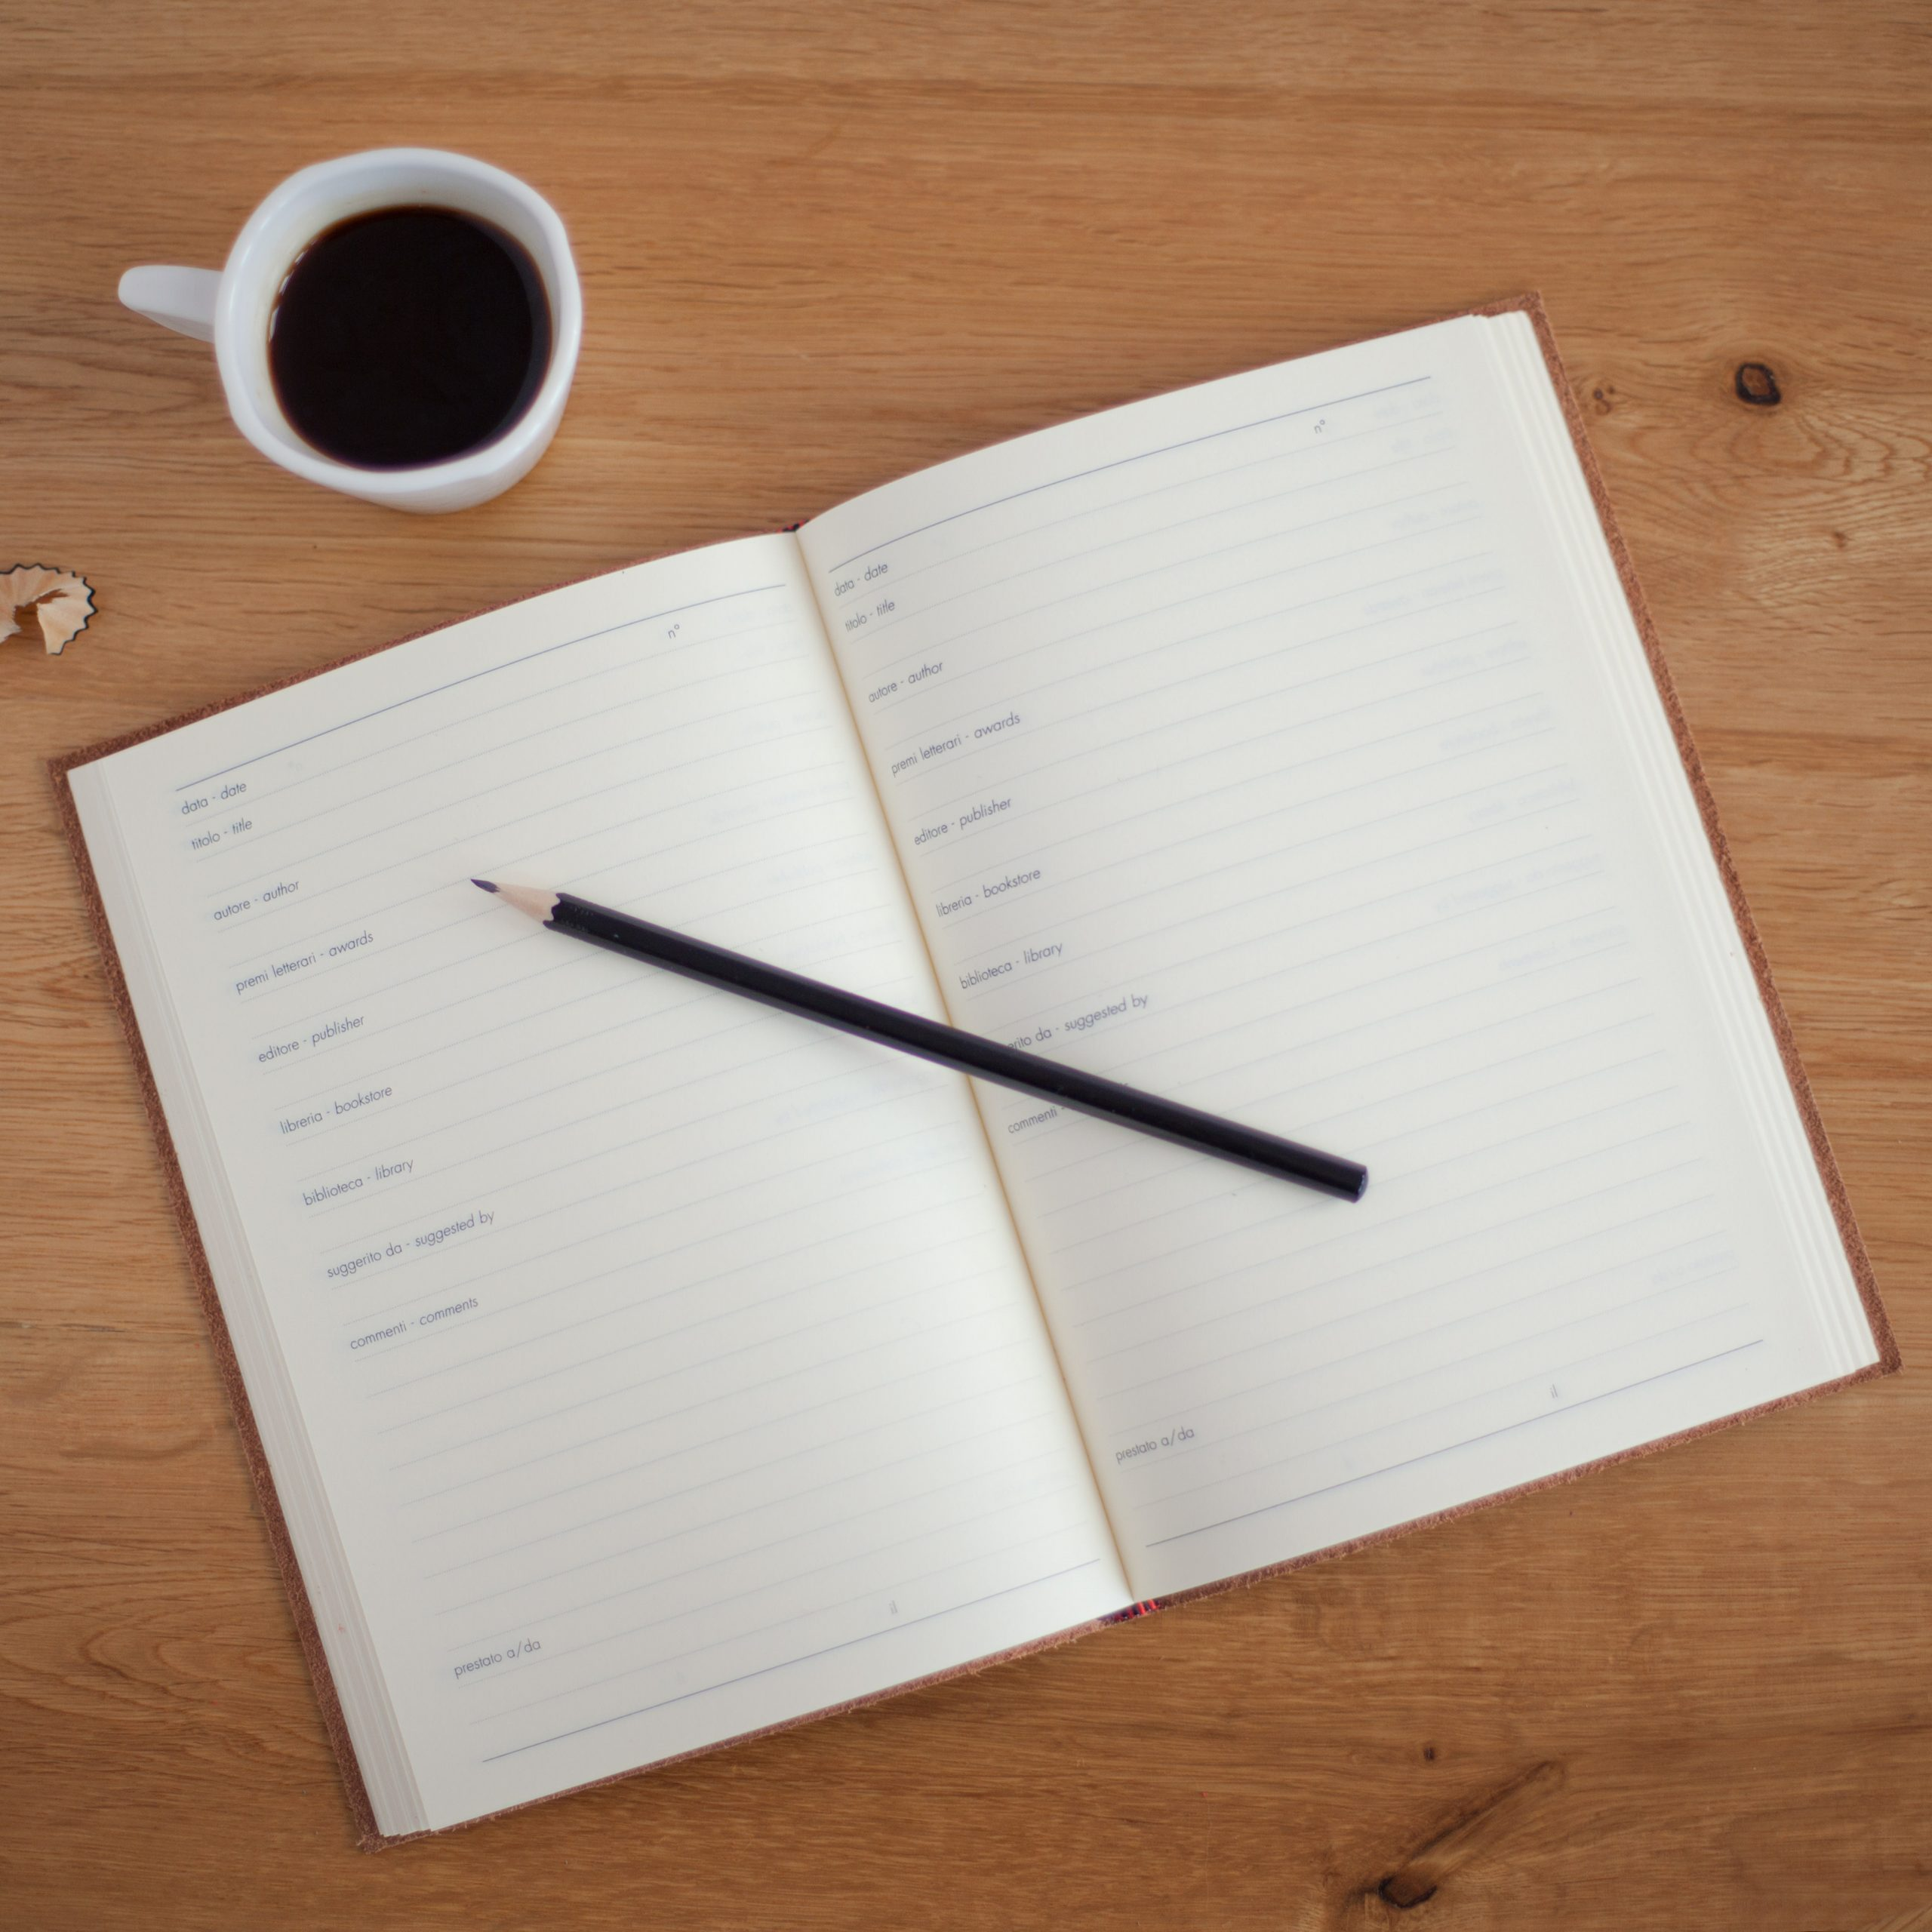 How to Make a Meal Plan in College (in 6 steps)